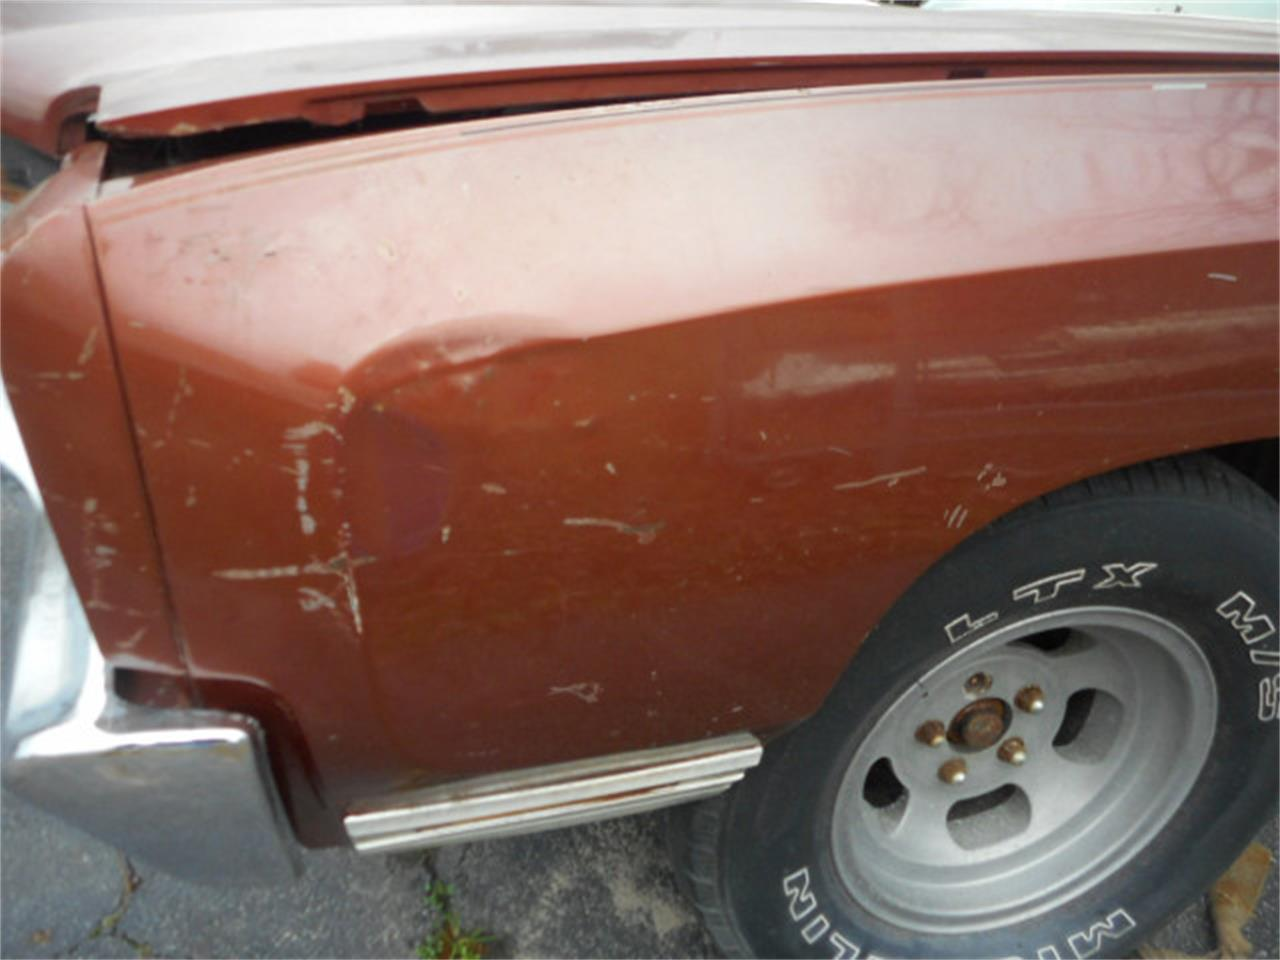 Large Picture of '71 Chevrolet Monte Carlo located in Greenville North Carolina - $2,000.00 - K7TU